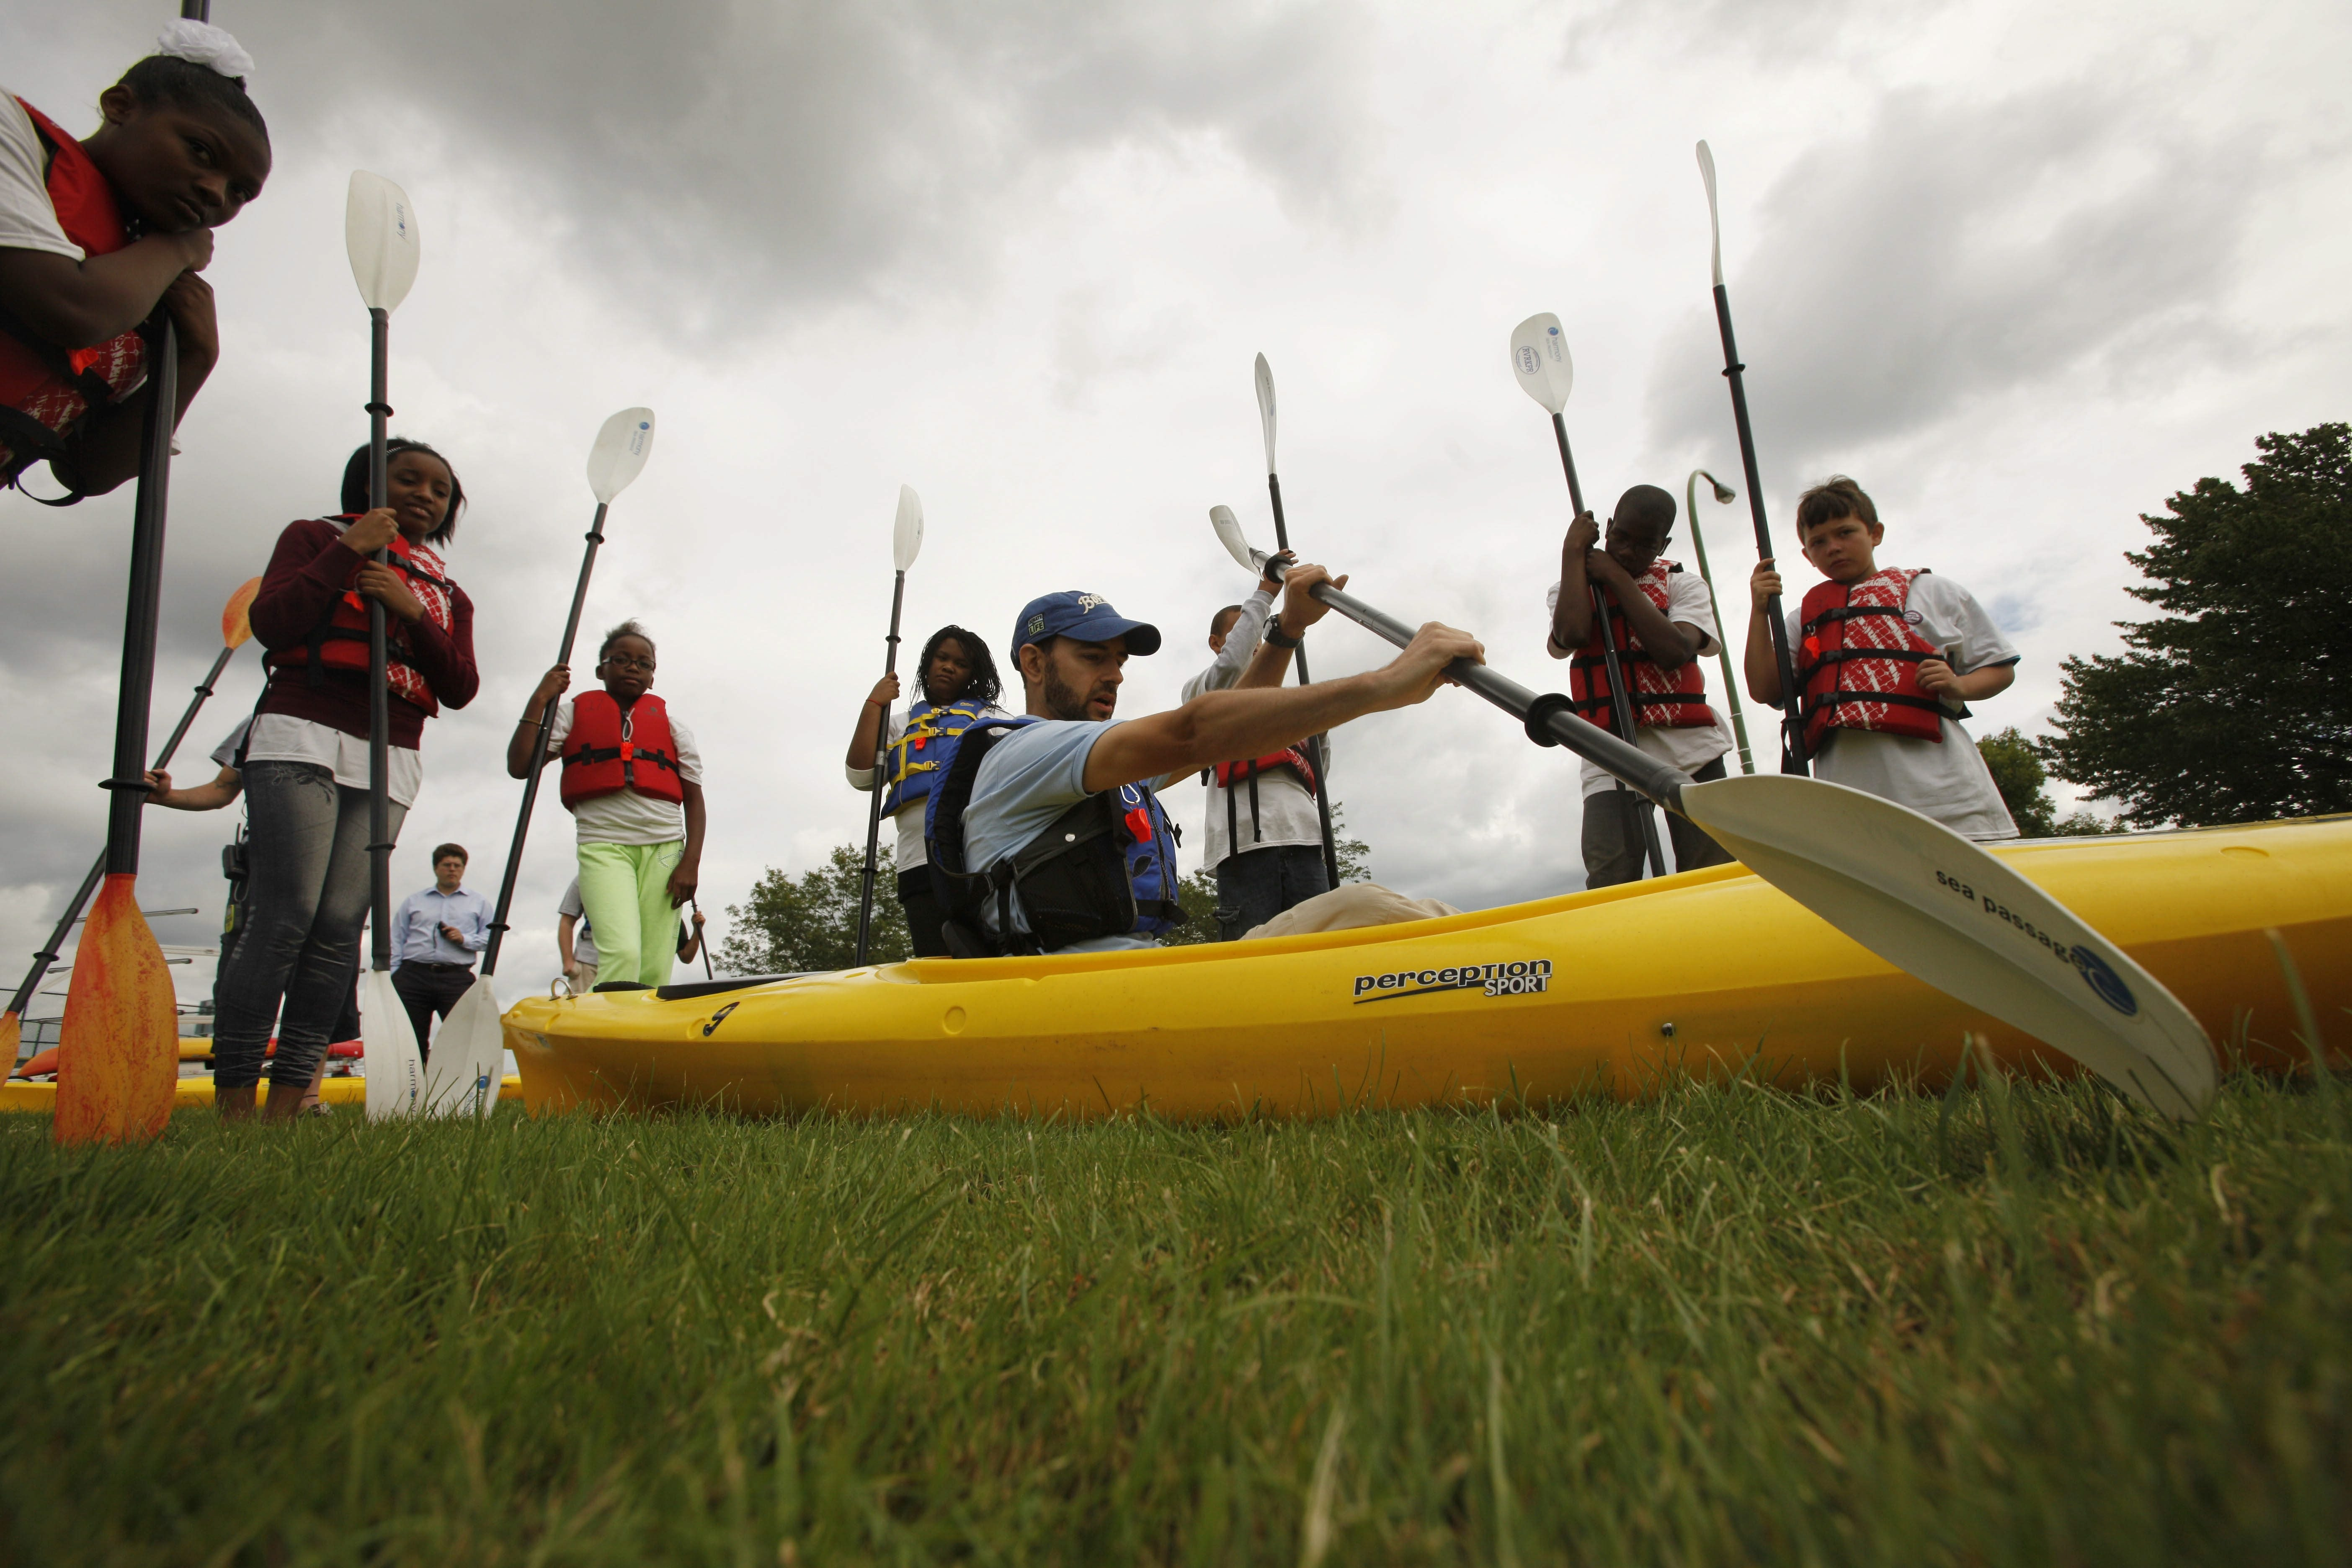 """Chris Murawski, river watch program coordinator for Buffalo Niagara Riverkeeper, gives a lesson on kayaking before hitting the water with students participating in the """"Honeywell Adventures in Environmental Leadership"""" program in Hyde Park in Niagara Falls, Monday, July 29, 2013.  (Derek Gee/Buffalo News)"""